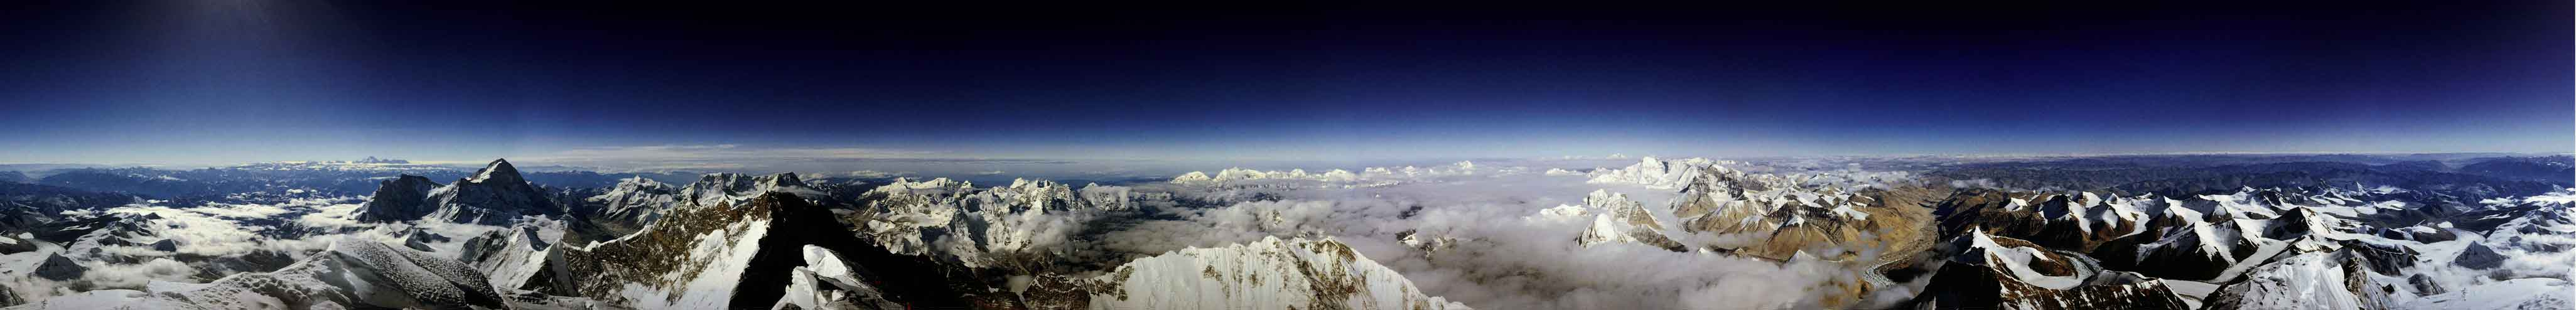 Vista a 360° dall'Everest.